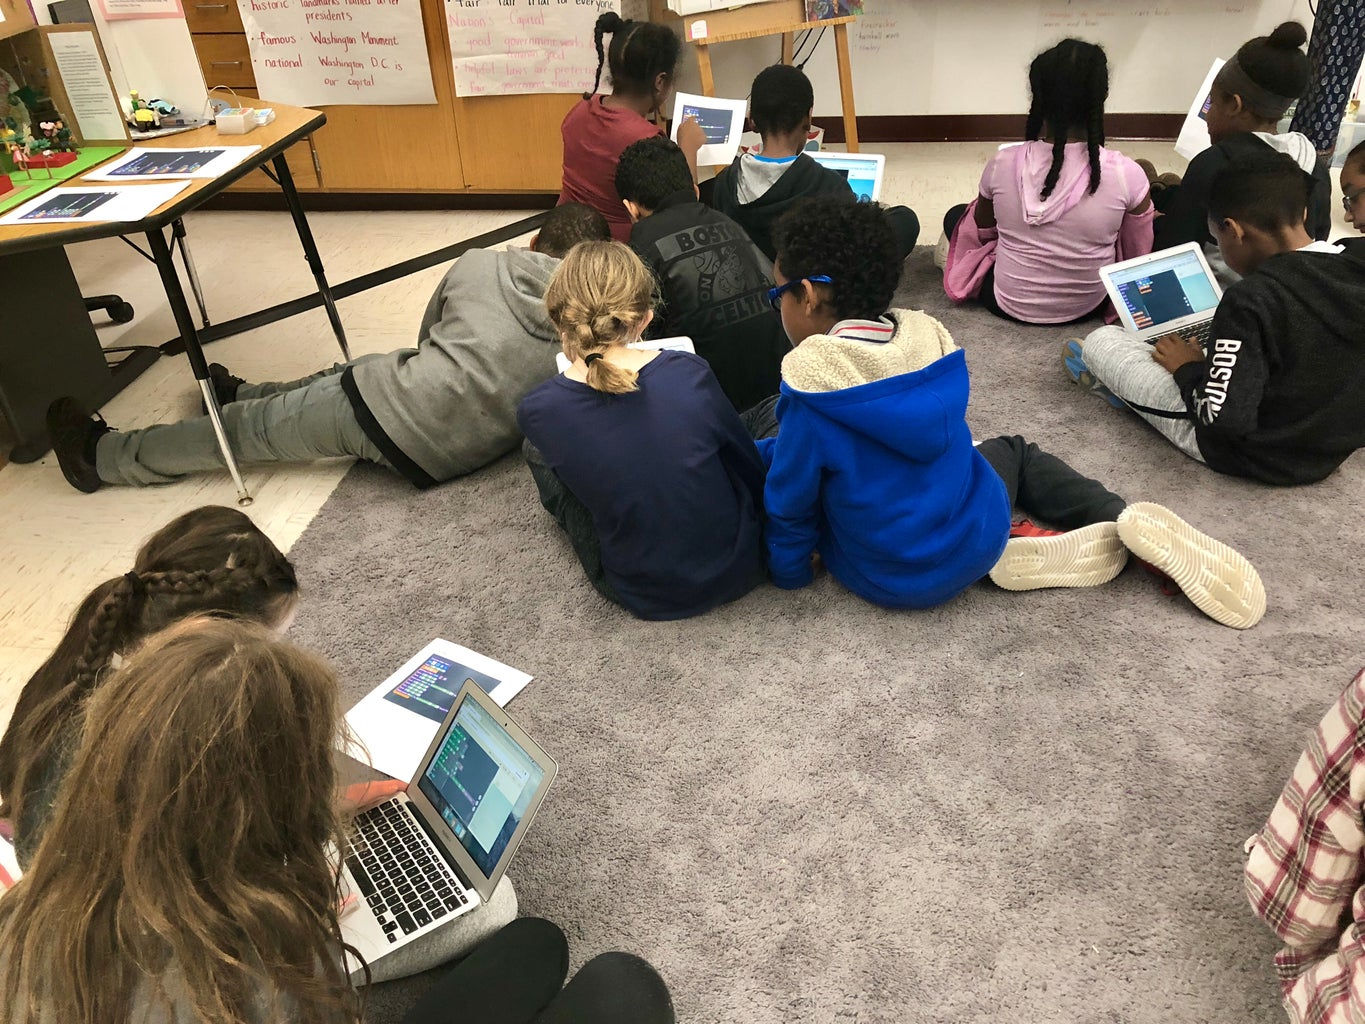 Give Students Some Code to Play With